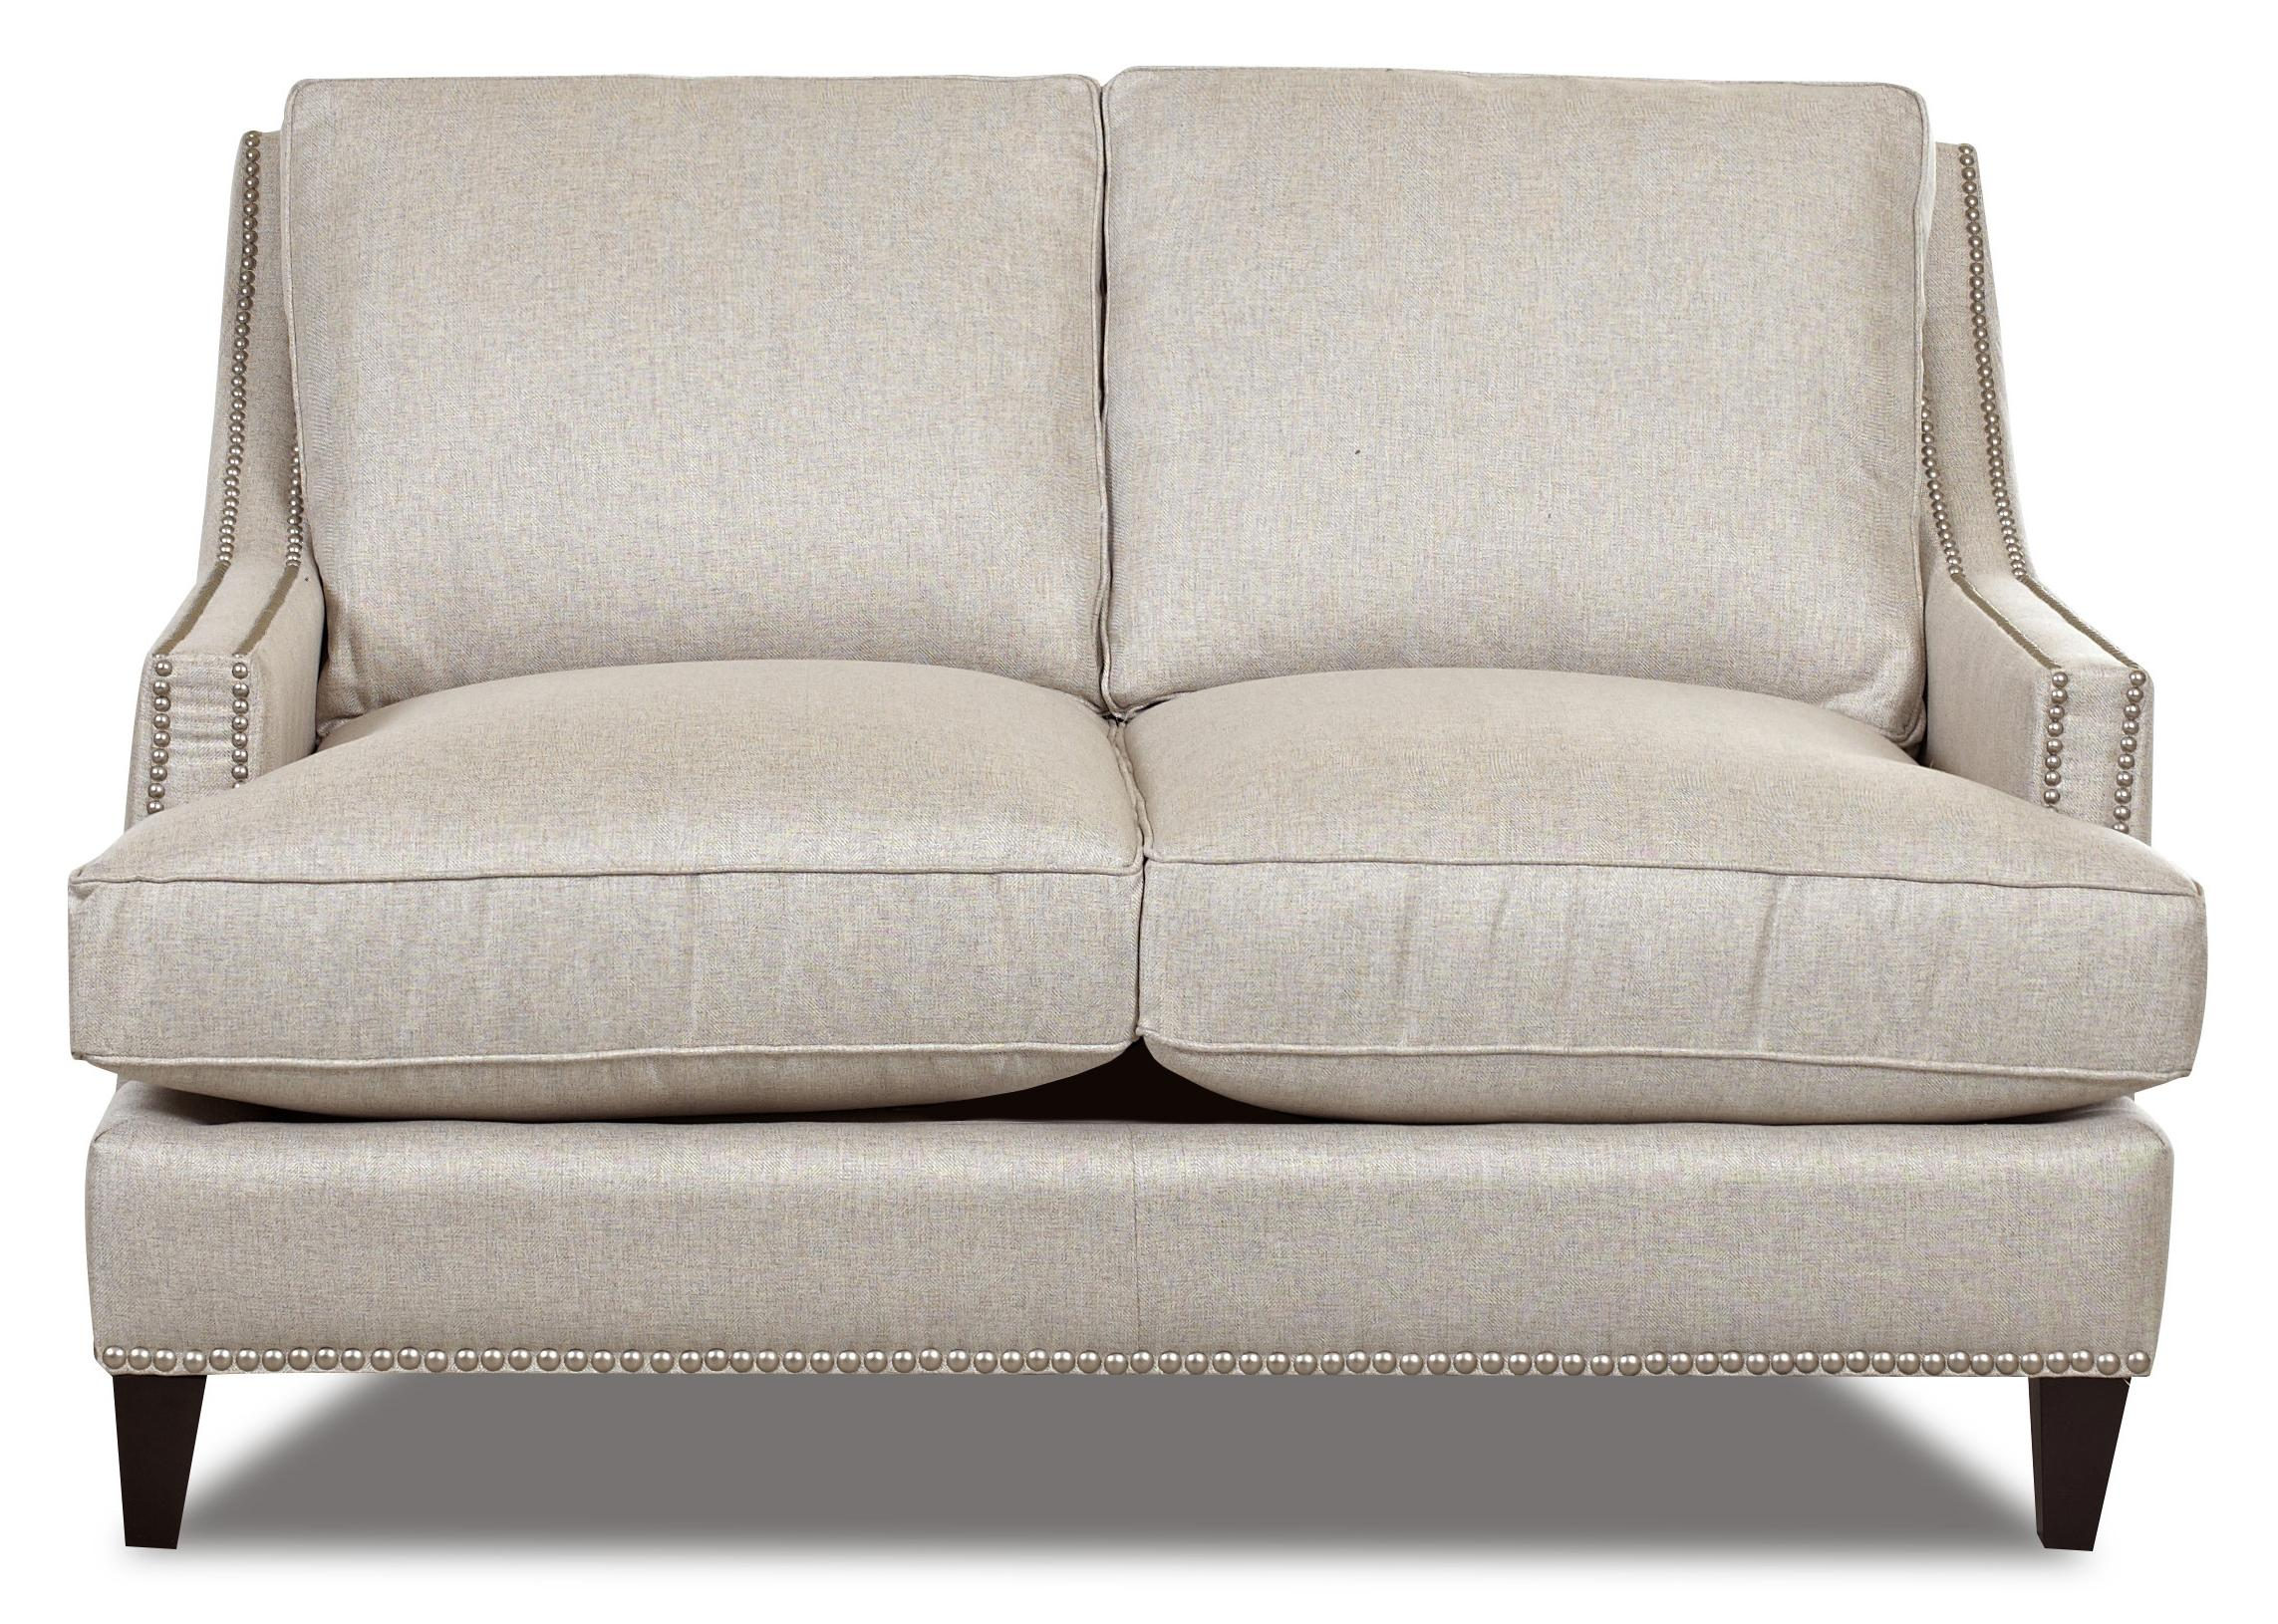 Superbe Klaussner Duchess Loveseat   Item Number: D40600 LS